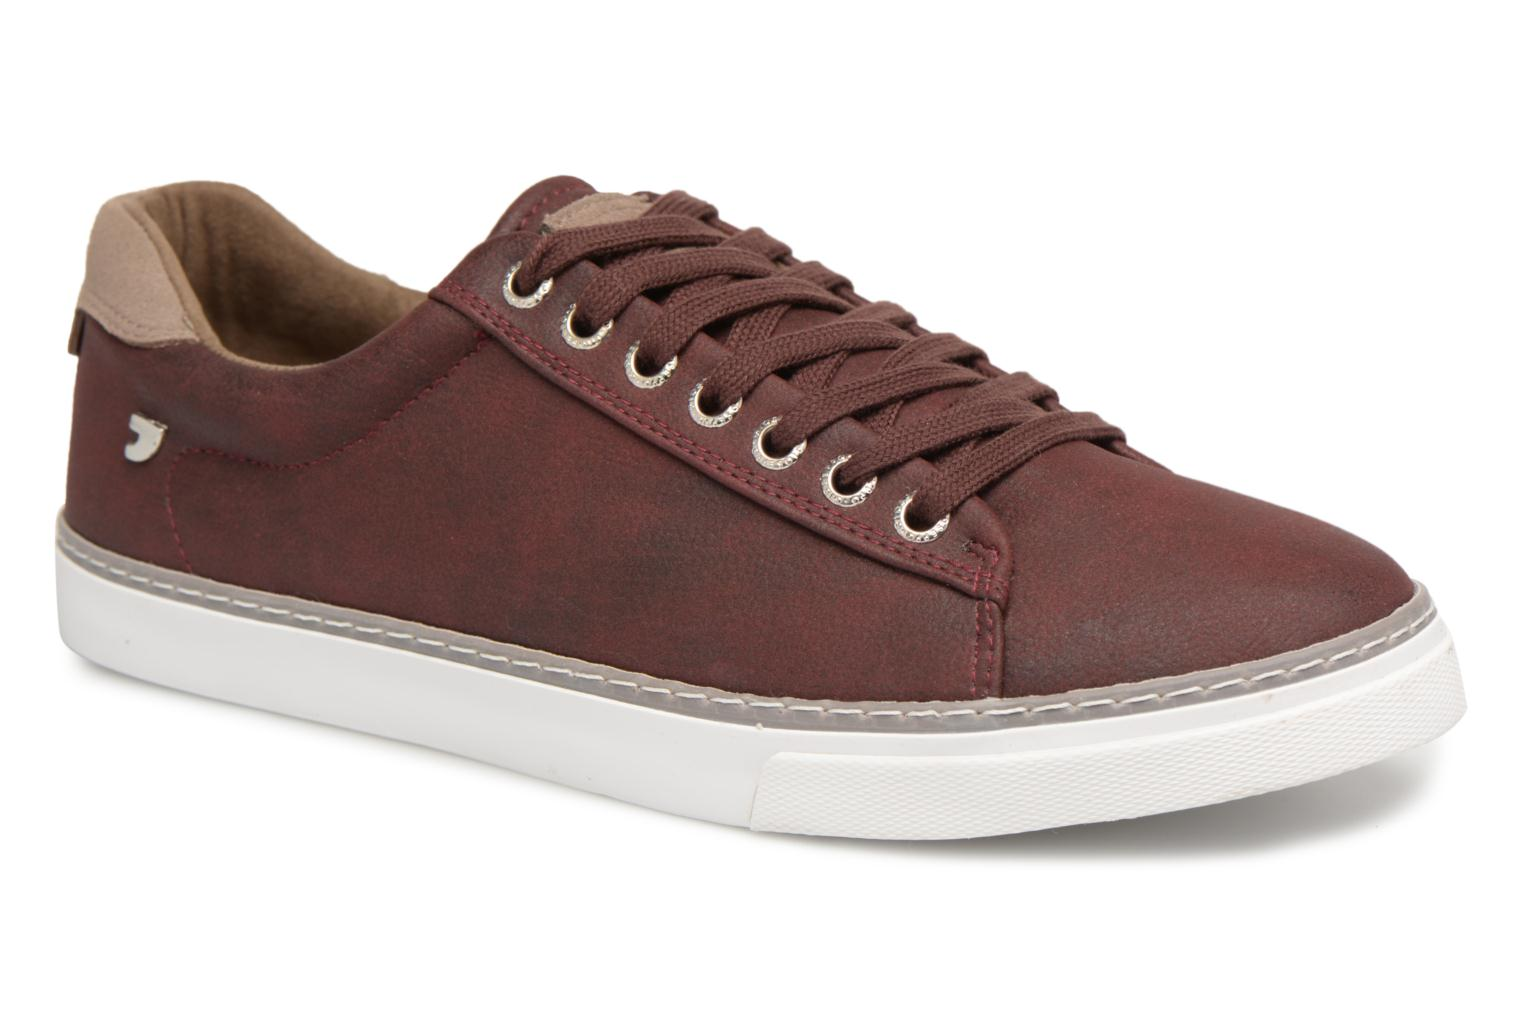 Sneakers Gioseppo Bordeaux